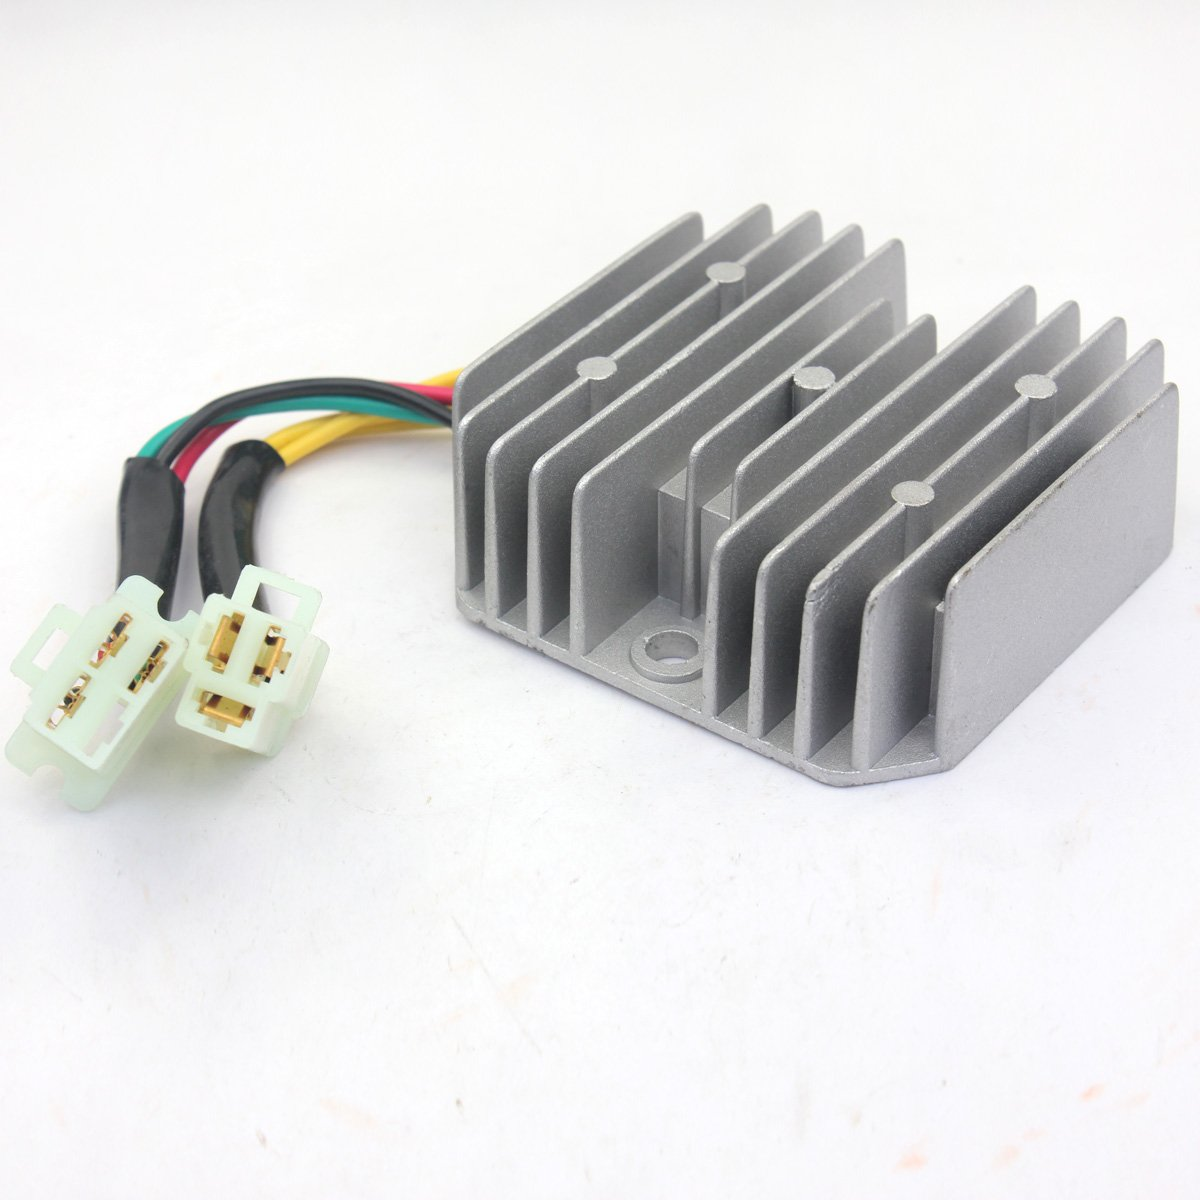 Wingsmoto Voltage Regulator Rectifier 6 Wires GY6 50 150cc Scooter Chinese  Moped Sunl Jcl